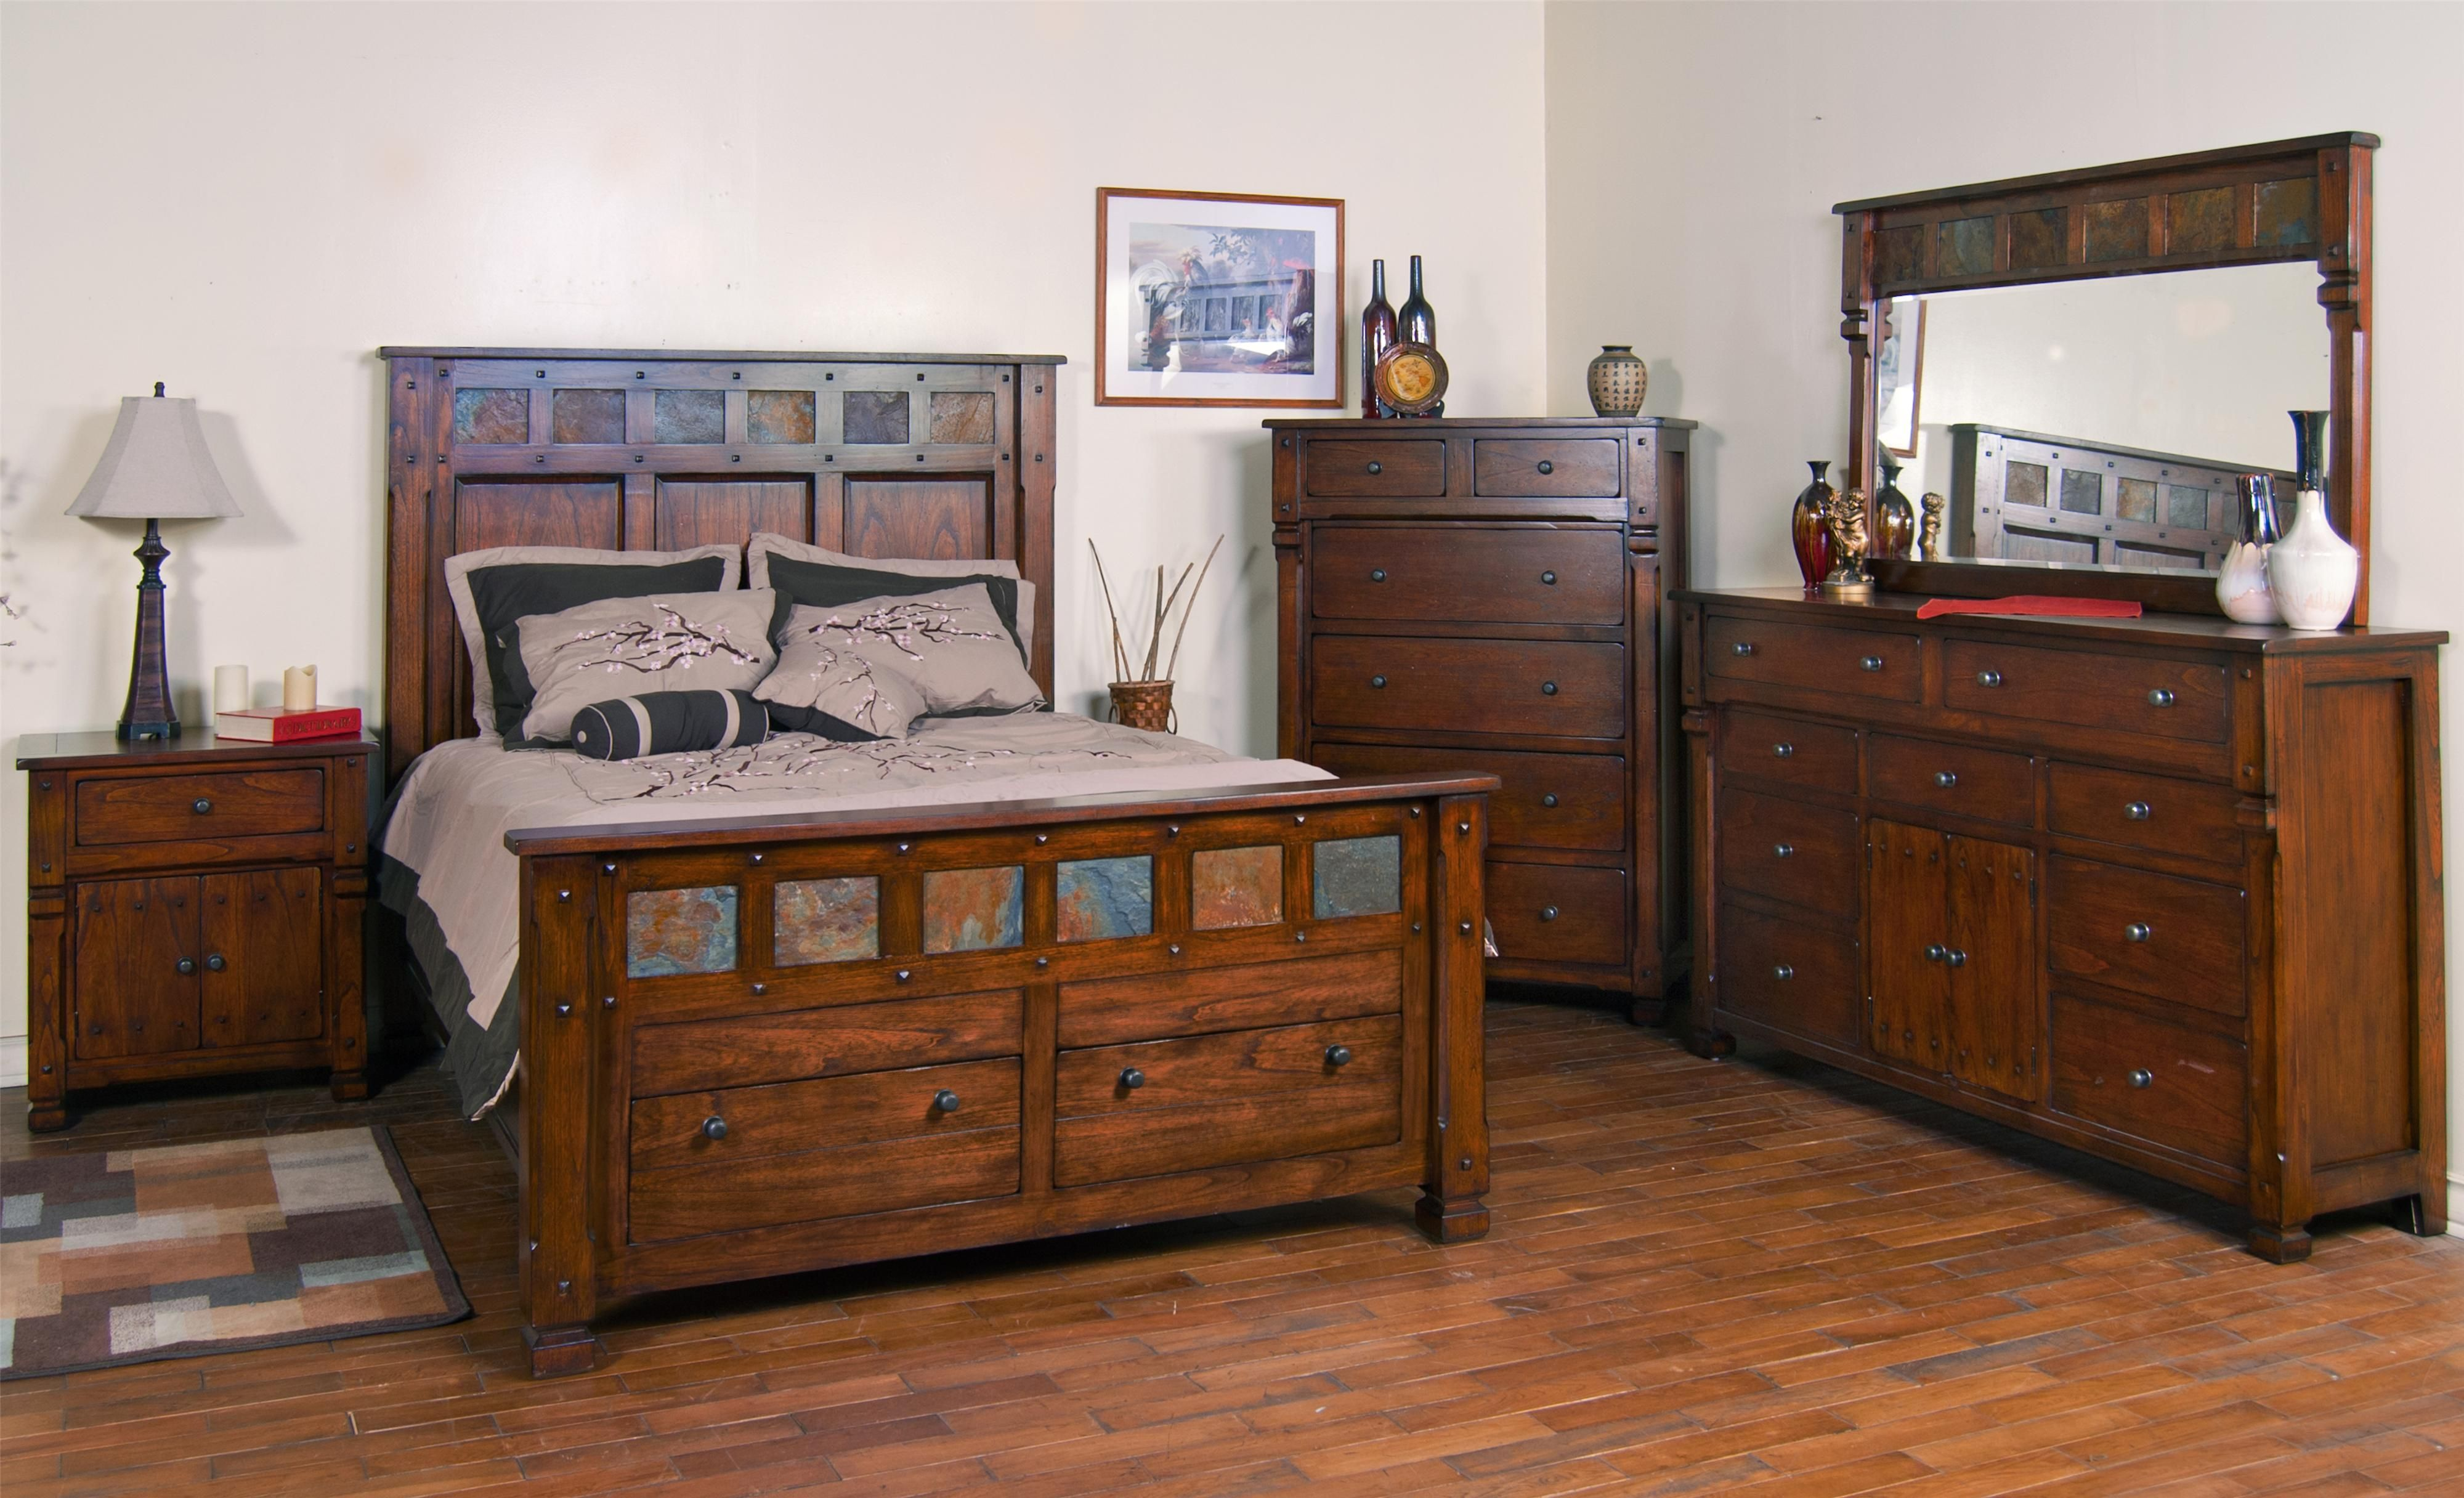 Sunny Designs Furniture Santa Fe Bedroom Collection Featuring